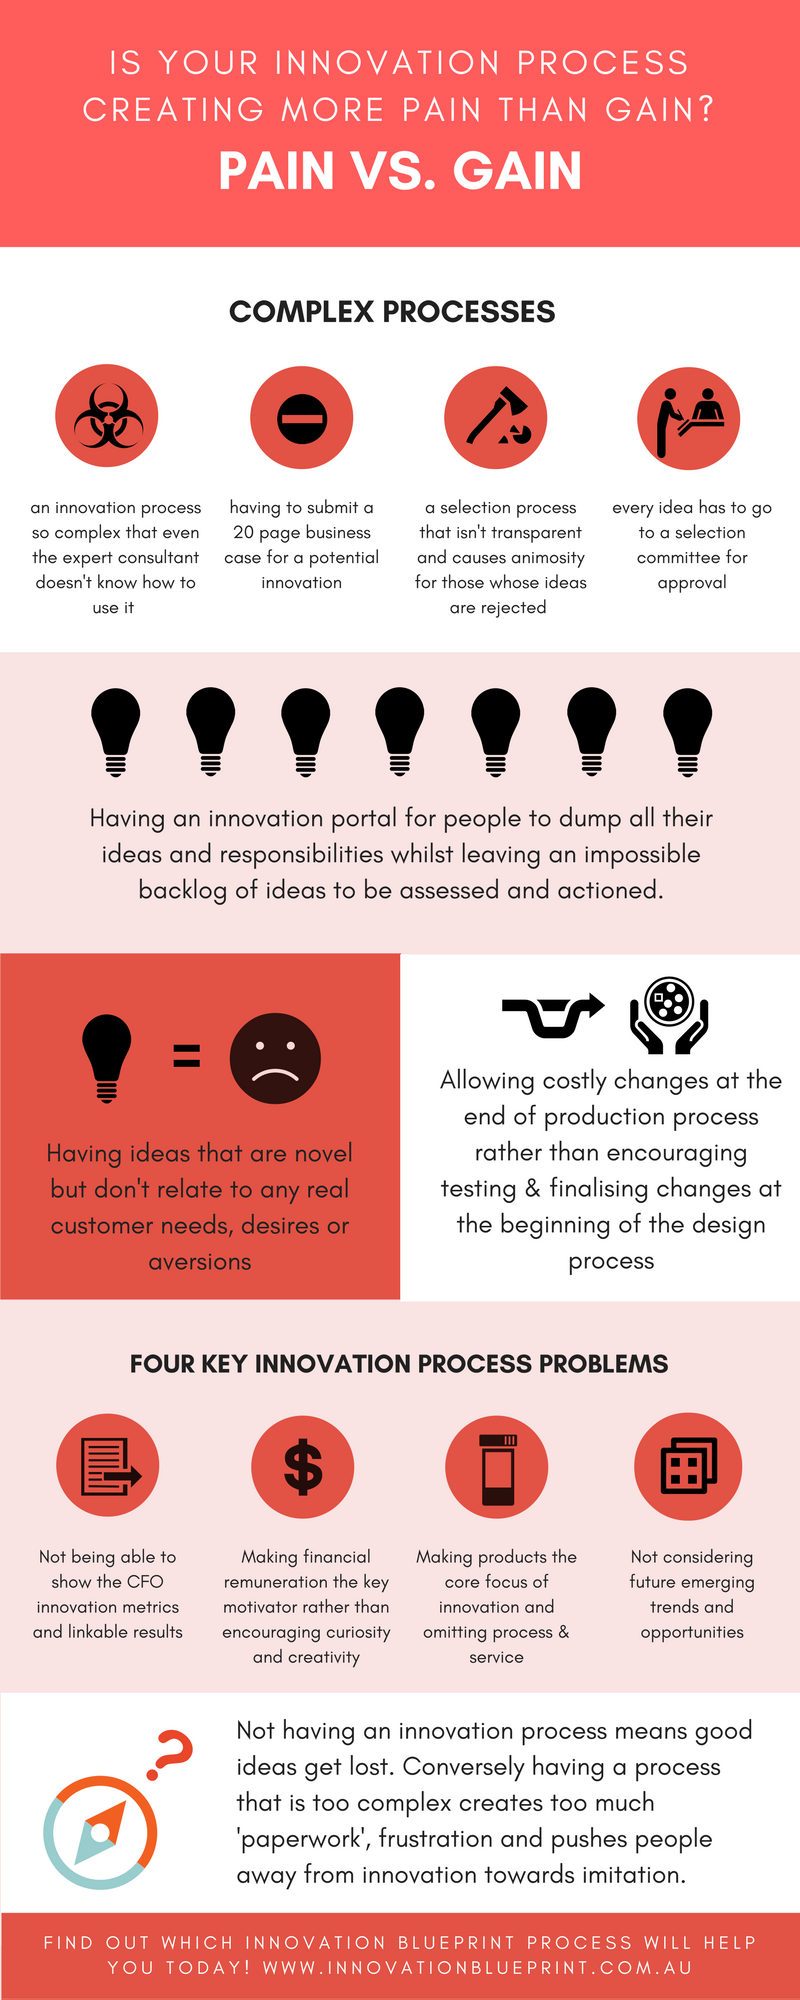 Pain or gain innovation process infographic.png